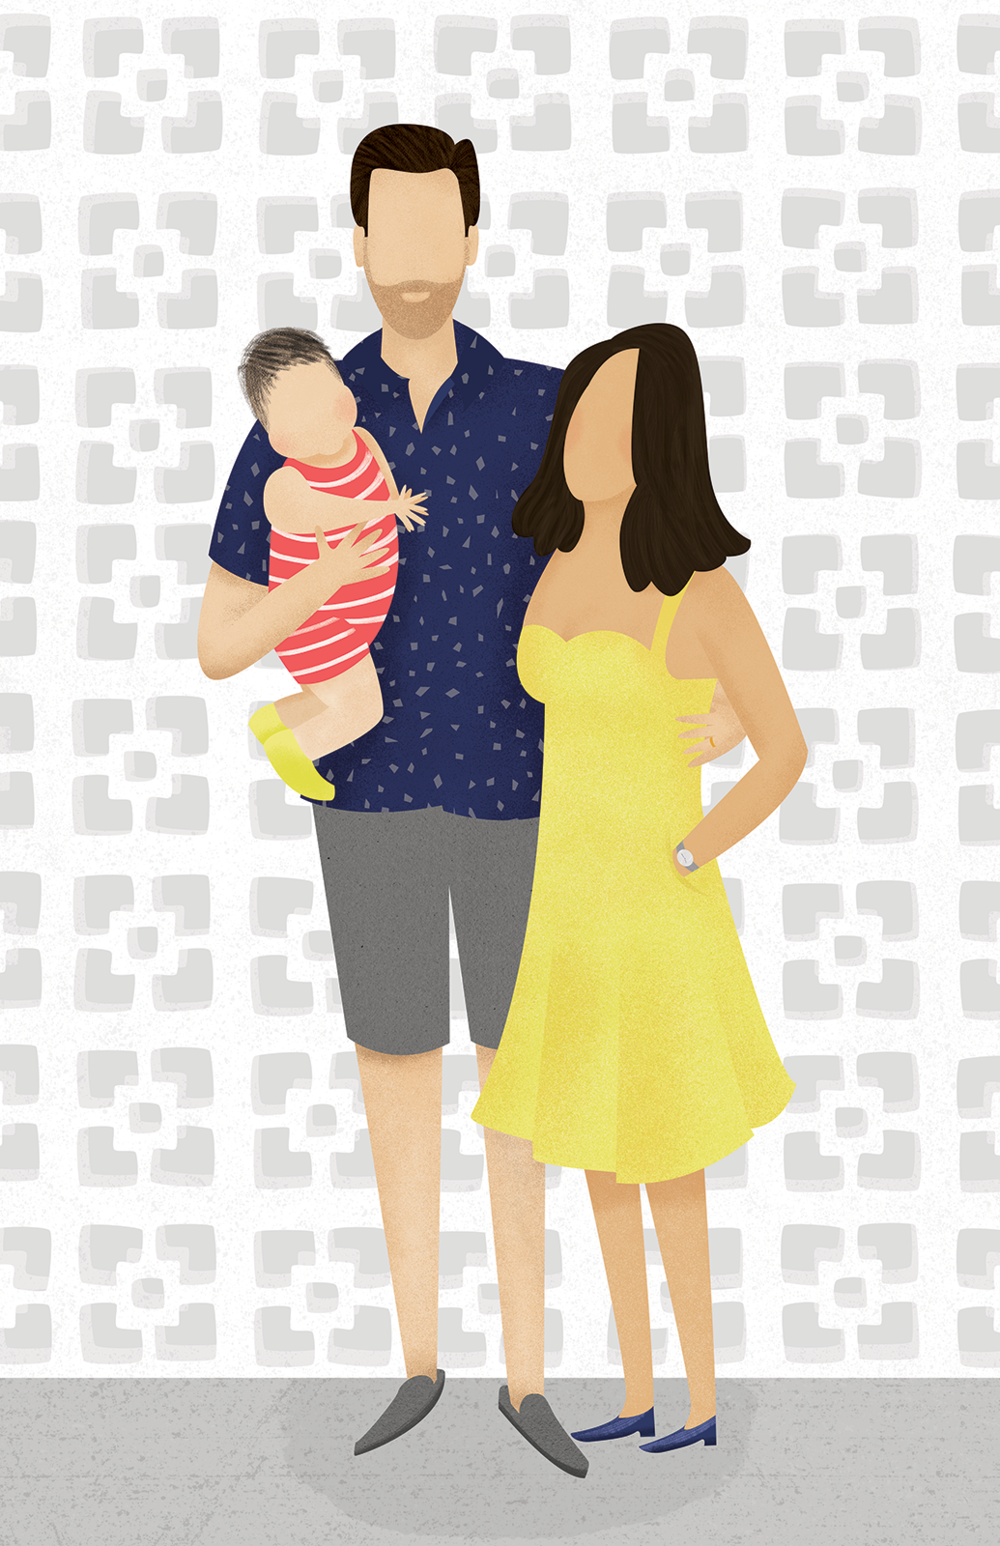 natalie-marion-family-portrait-happy-baby-illustration.png